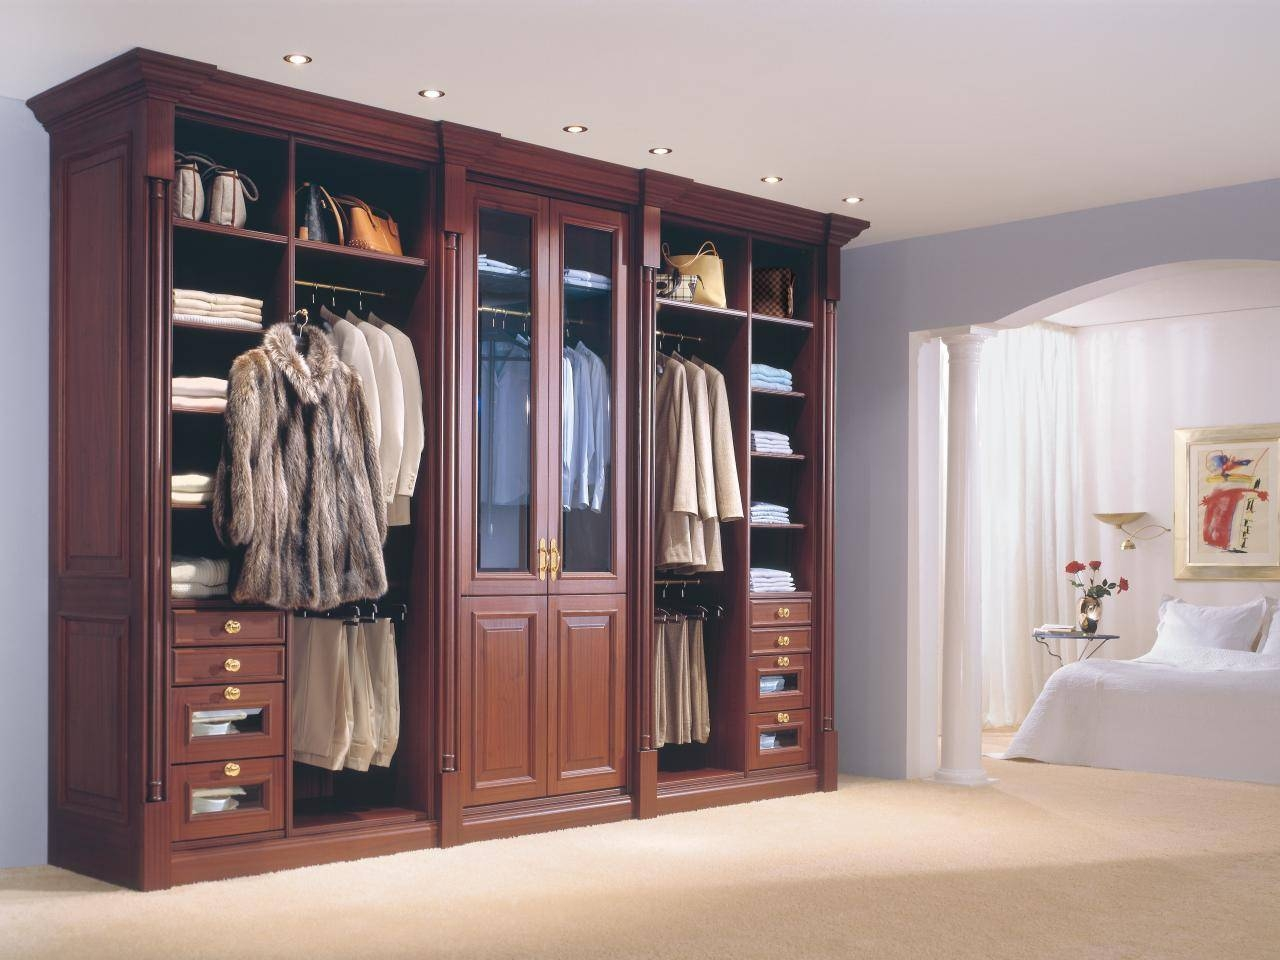 Armoires And Wardrobes: Closet Storage Ideas And Solutions | Hgtv regarding Bedroom Wardrobe Storages (Image 2 of 30)